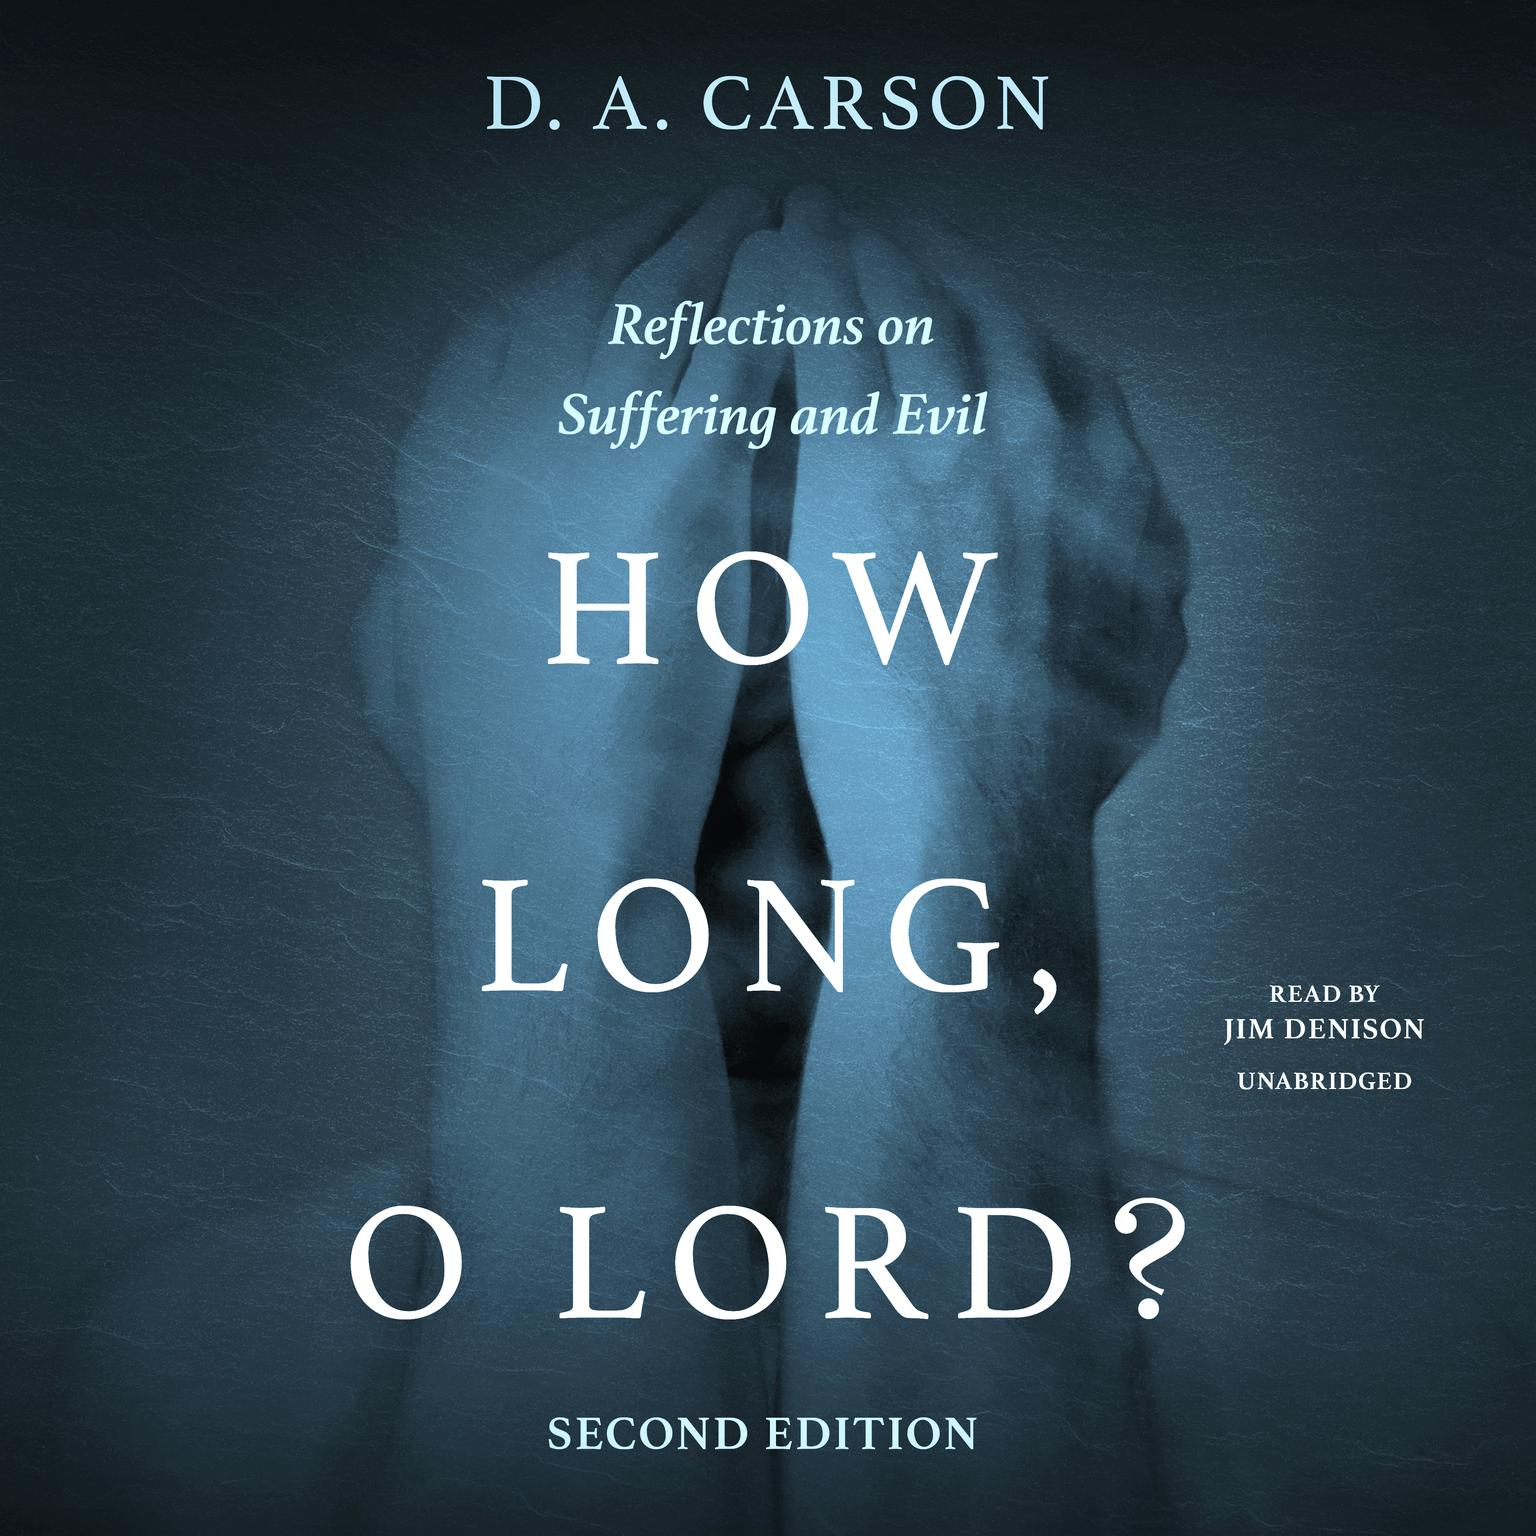 Printable How Long, O Lord? Second Edition: Reflections on Suffering and Evil Audiobook Cover Art